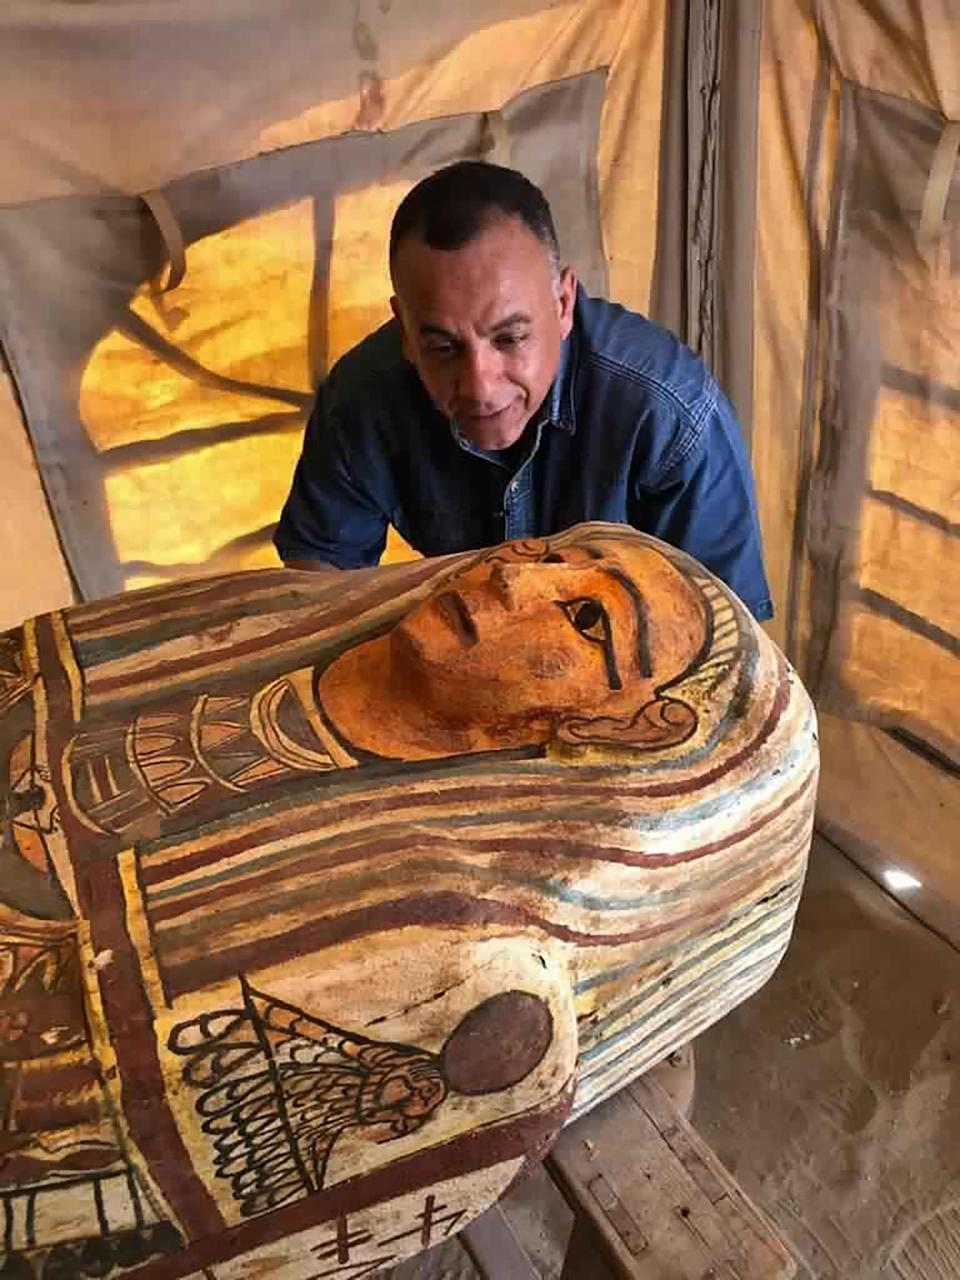 This Sept. 2020 photo provided by the Ministry of Tourism and Antiquities shows Mostafa Waziri, secretary general of the Supreme Council of Antiquities, posing with one of more than two dozen ancient coffins unearthed near the famed Step Pyramid of Djoser in Saqqara, south of Cairo, Egypt. (Ministry of Tourism and Antiquities via AP)